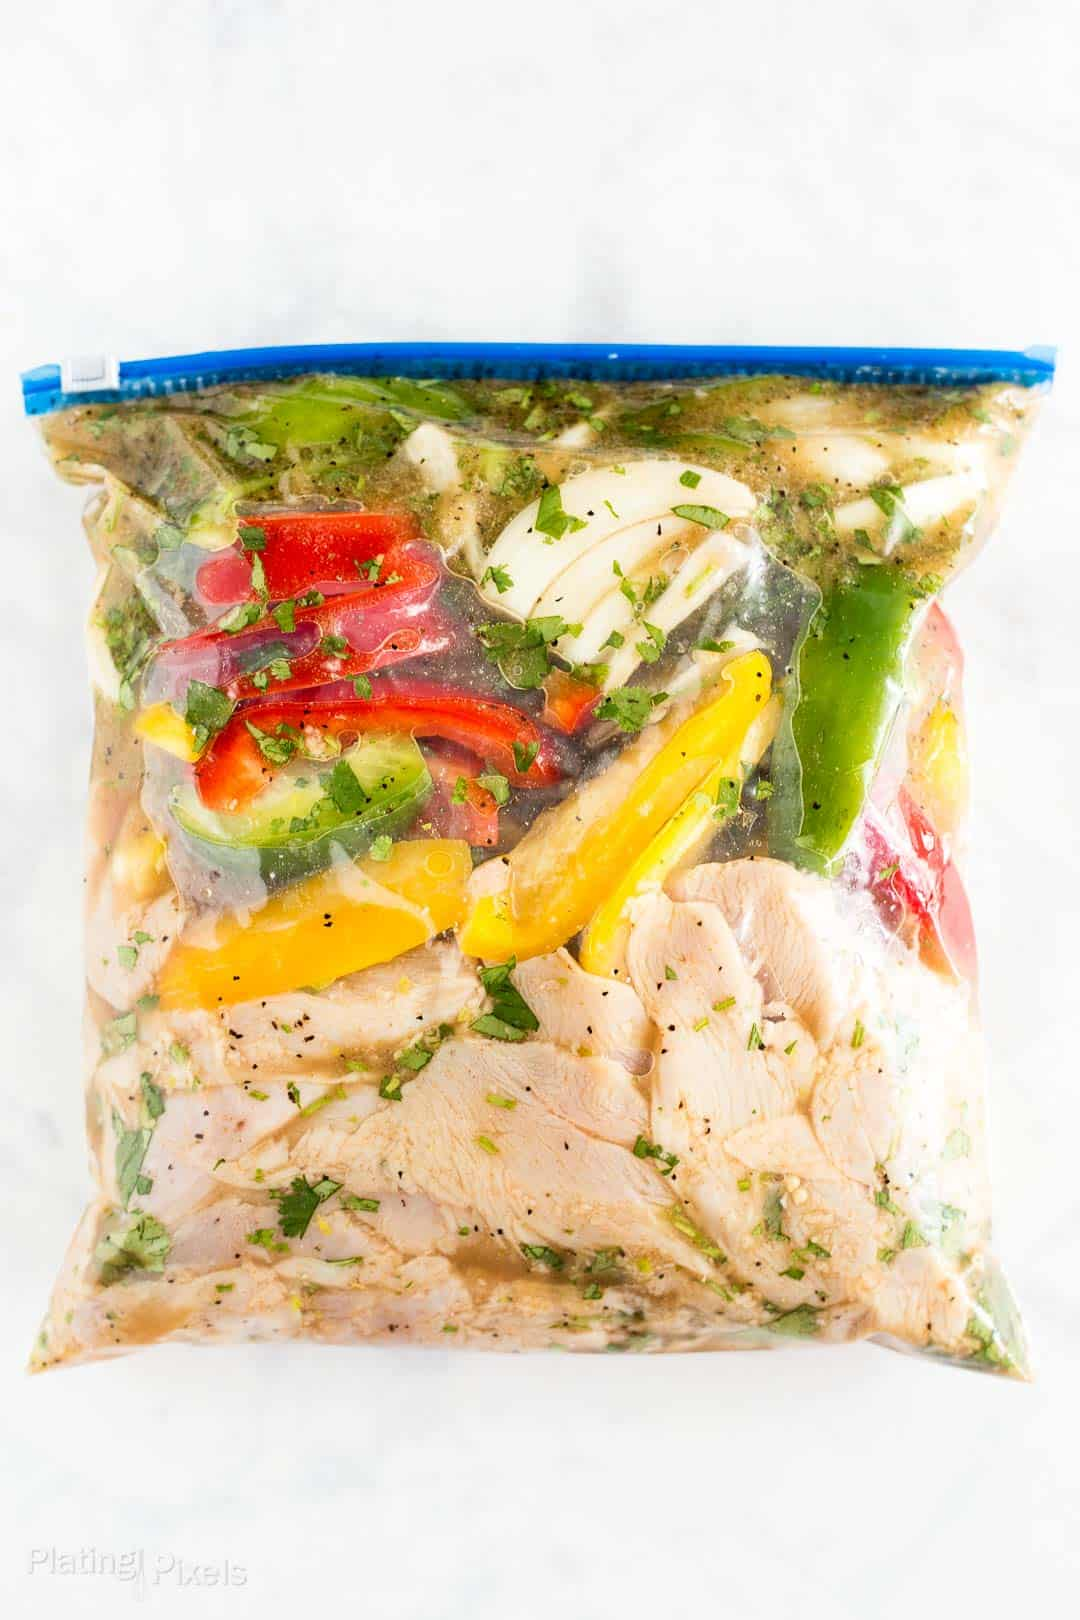 Process shot of chicken and vegetables marinating in a bag to make fajitas